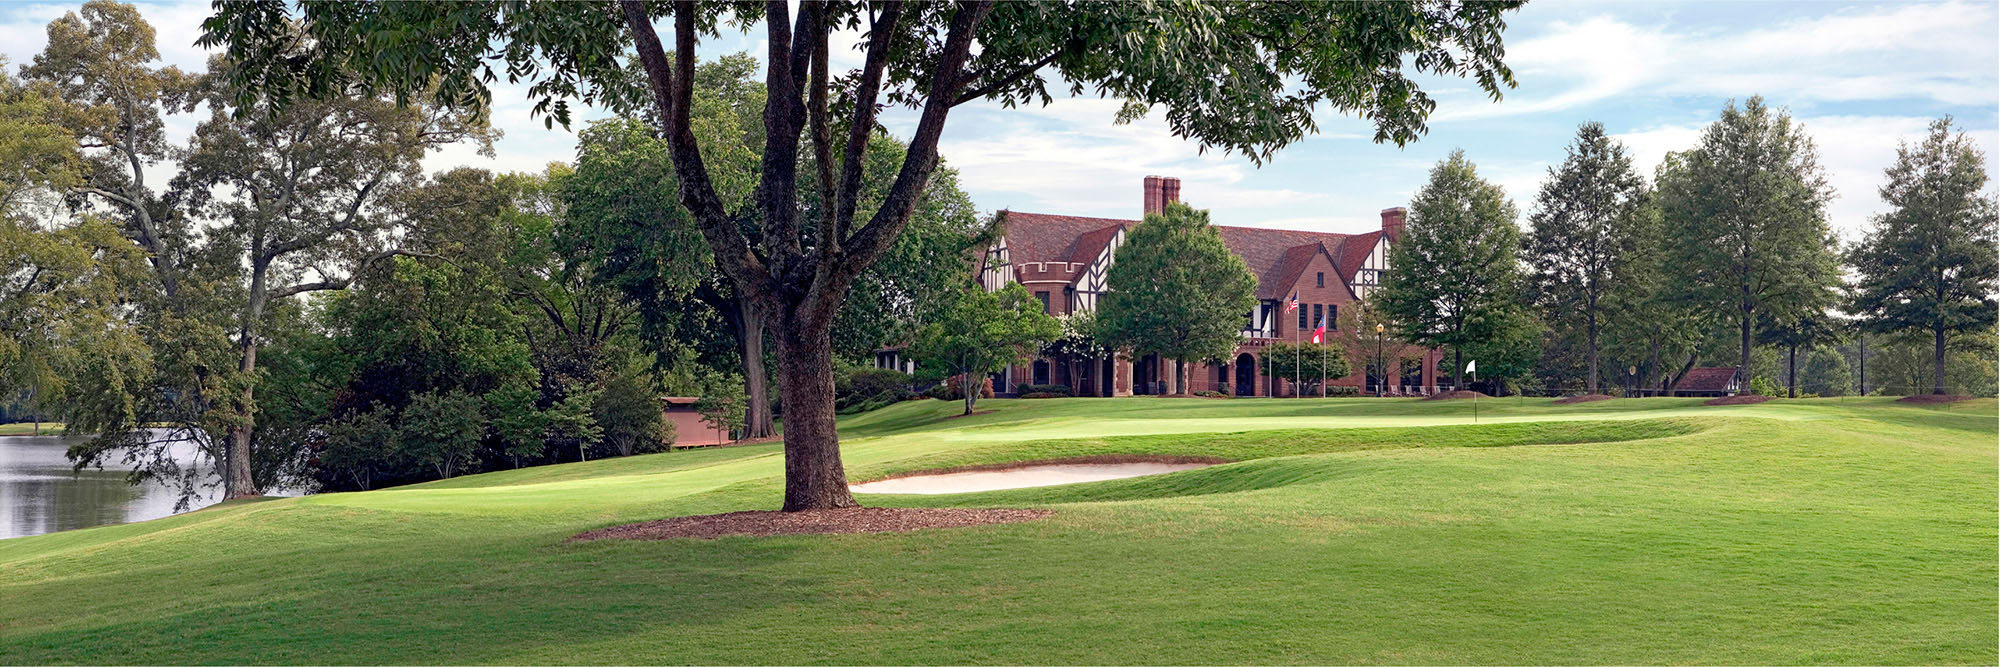 Golf Course Image - East Lake No. 18